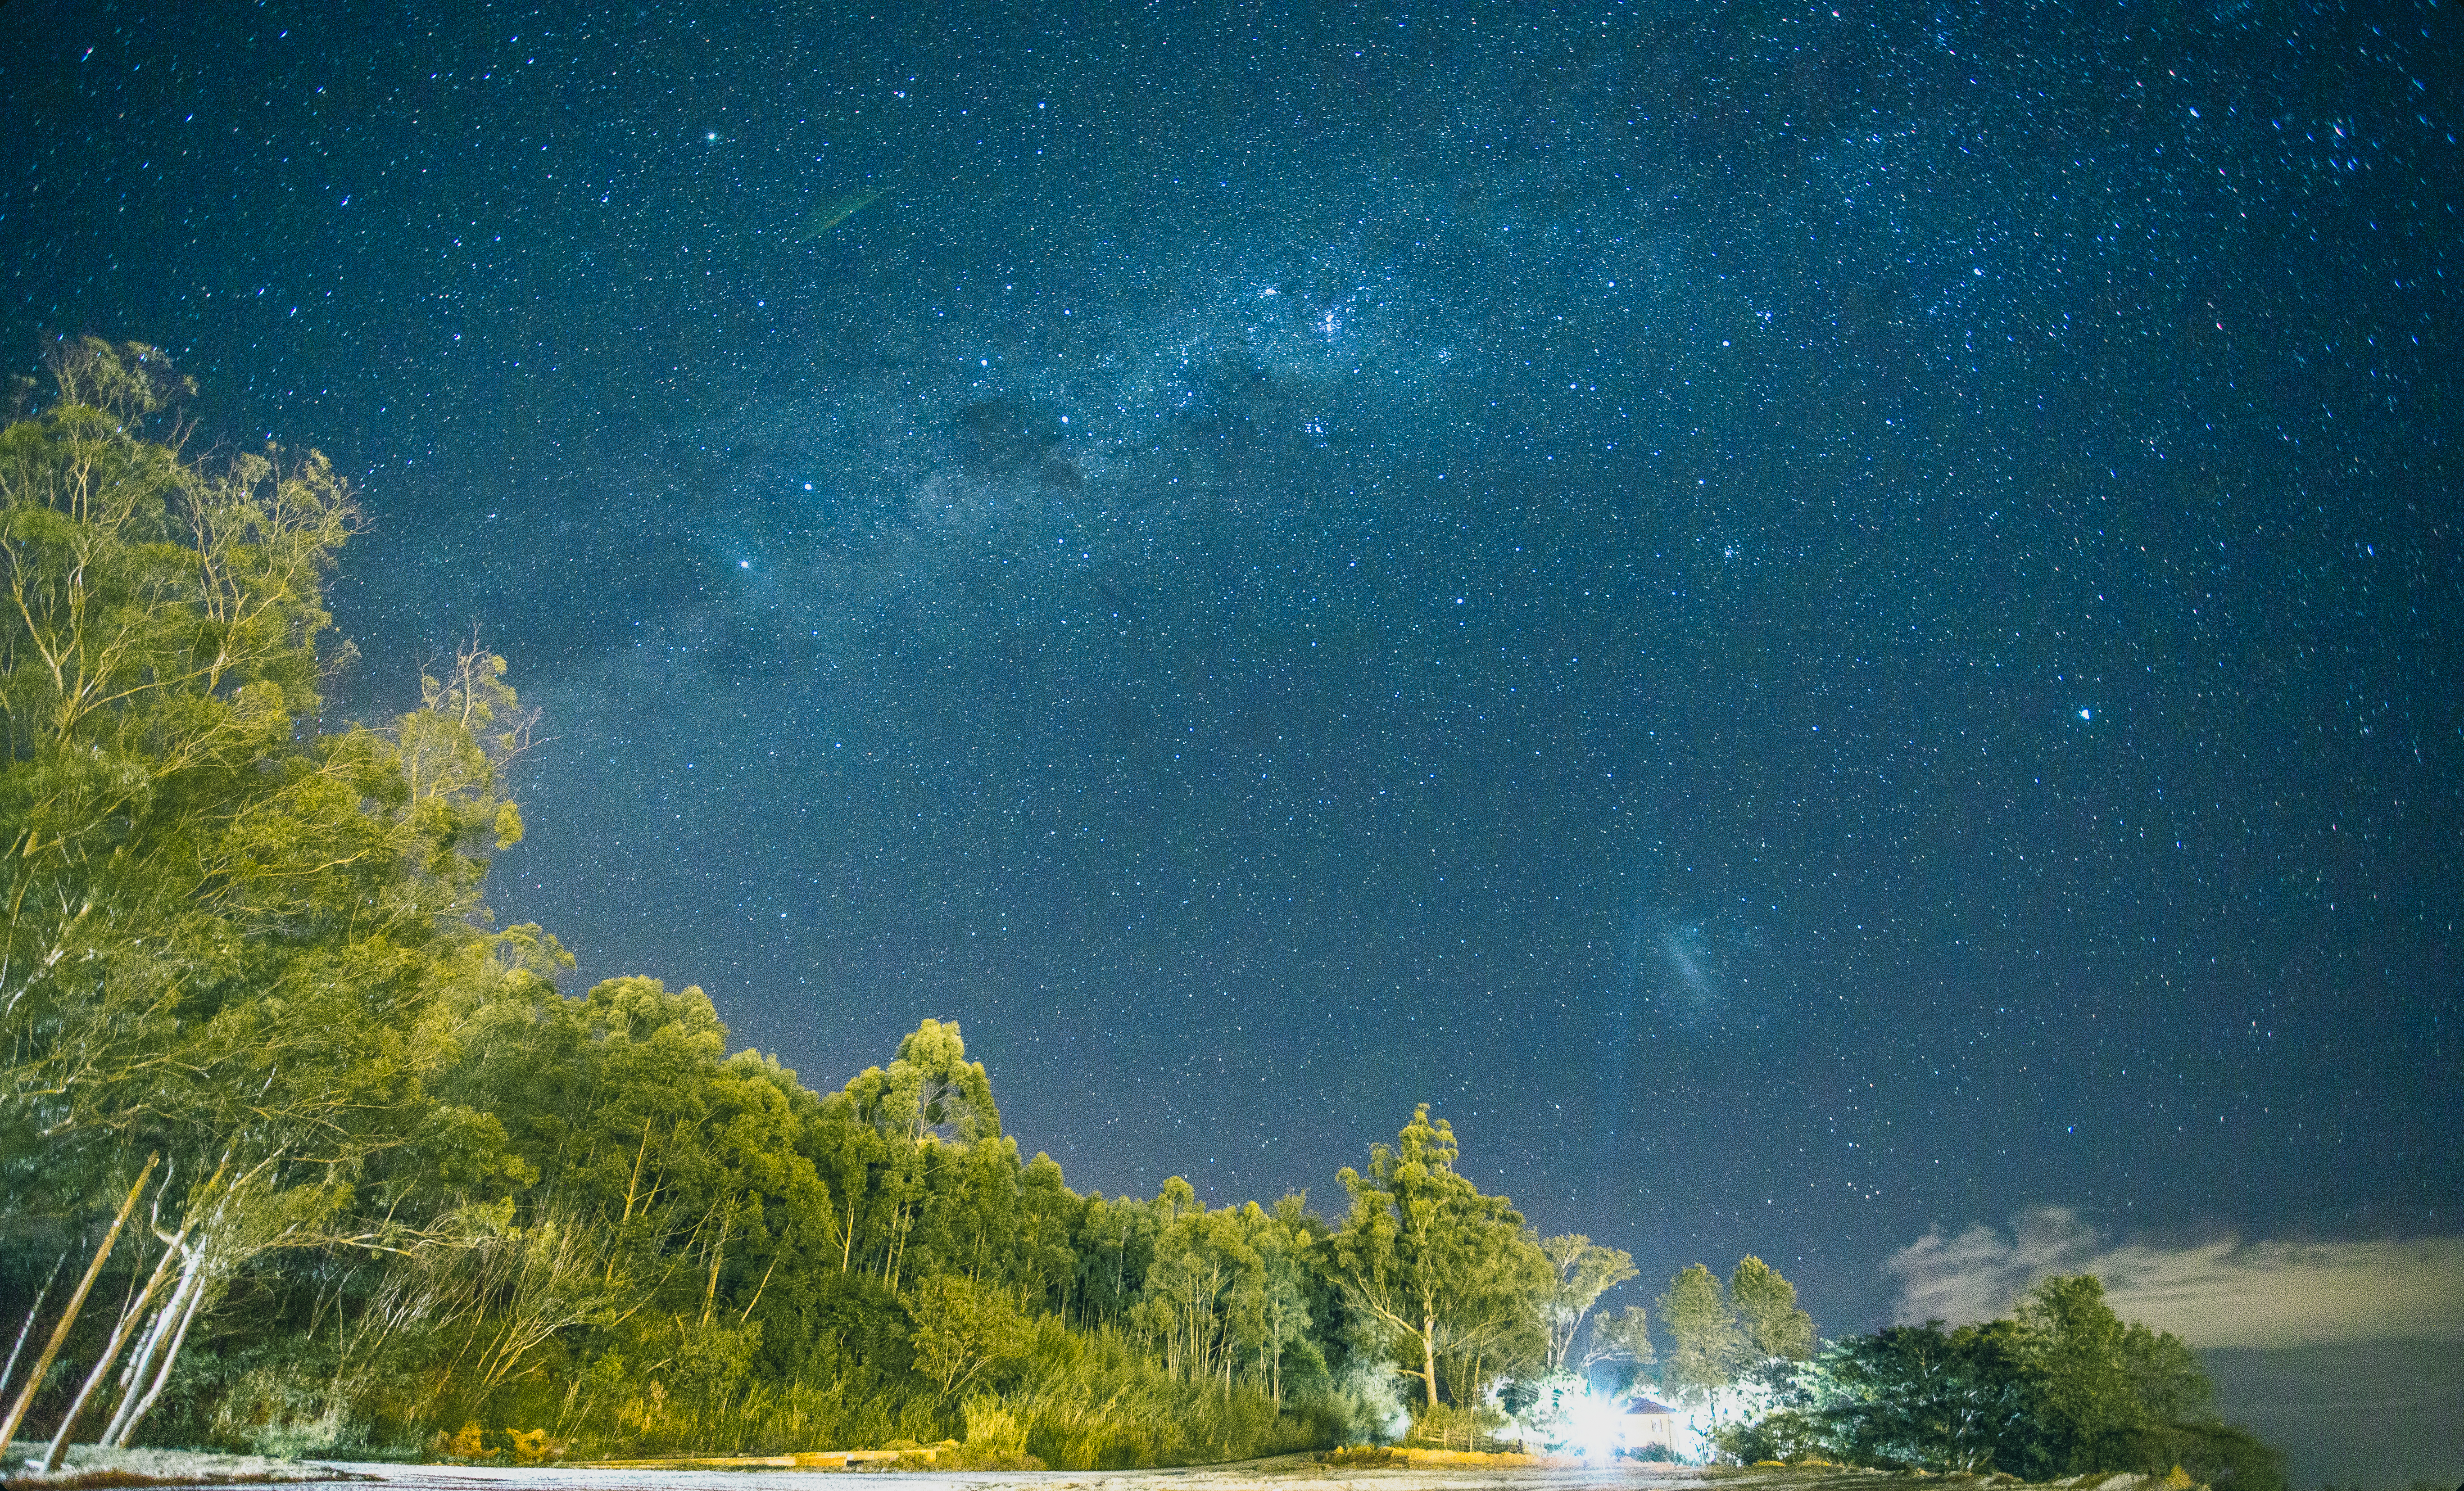 Scenic View Of Mountains Against Sky At Night 183 Free Stock